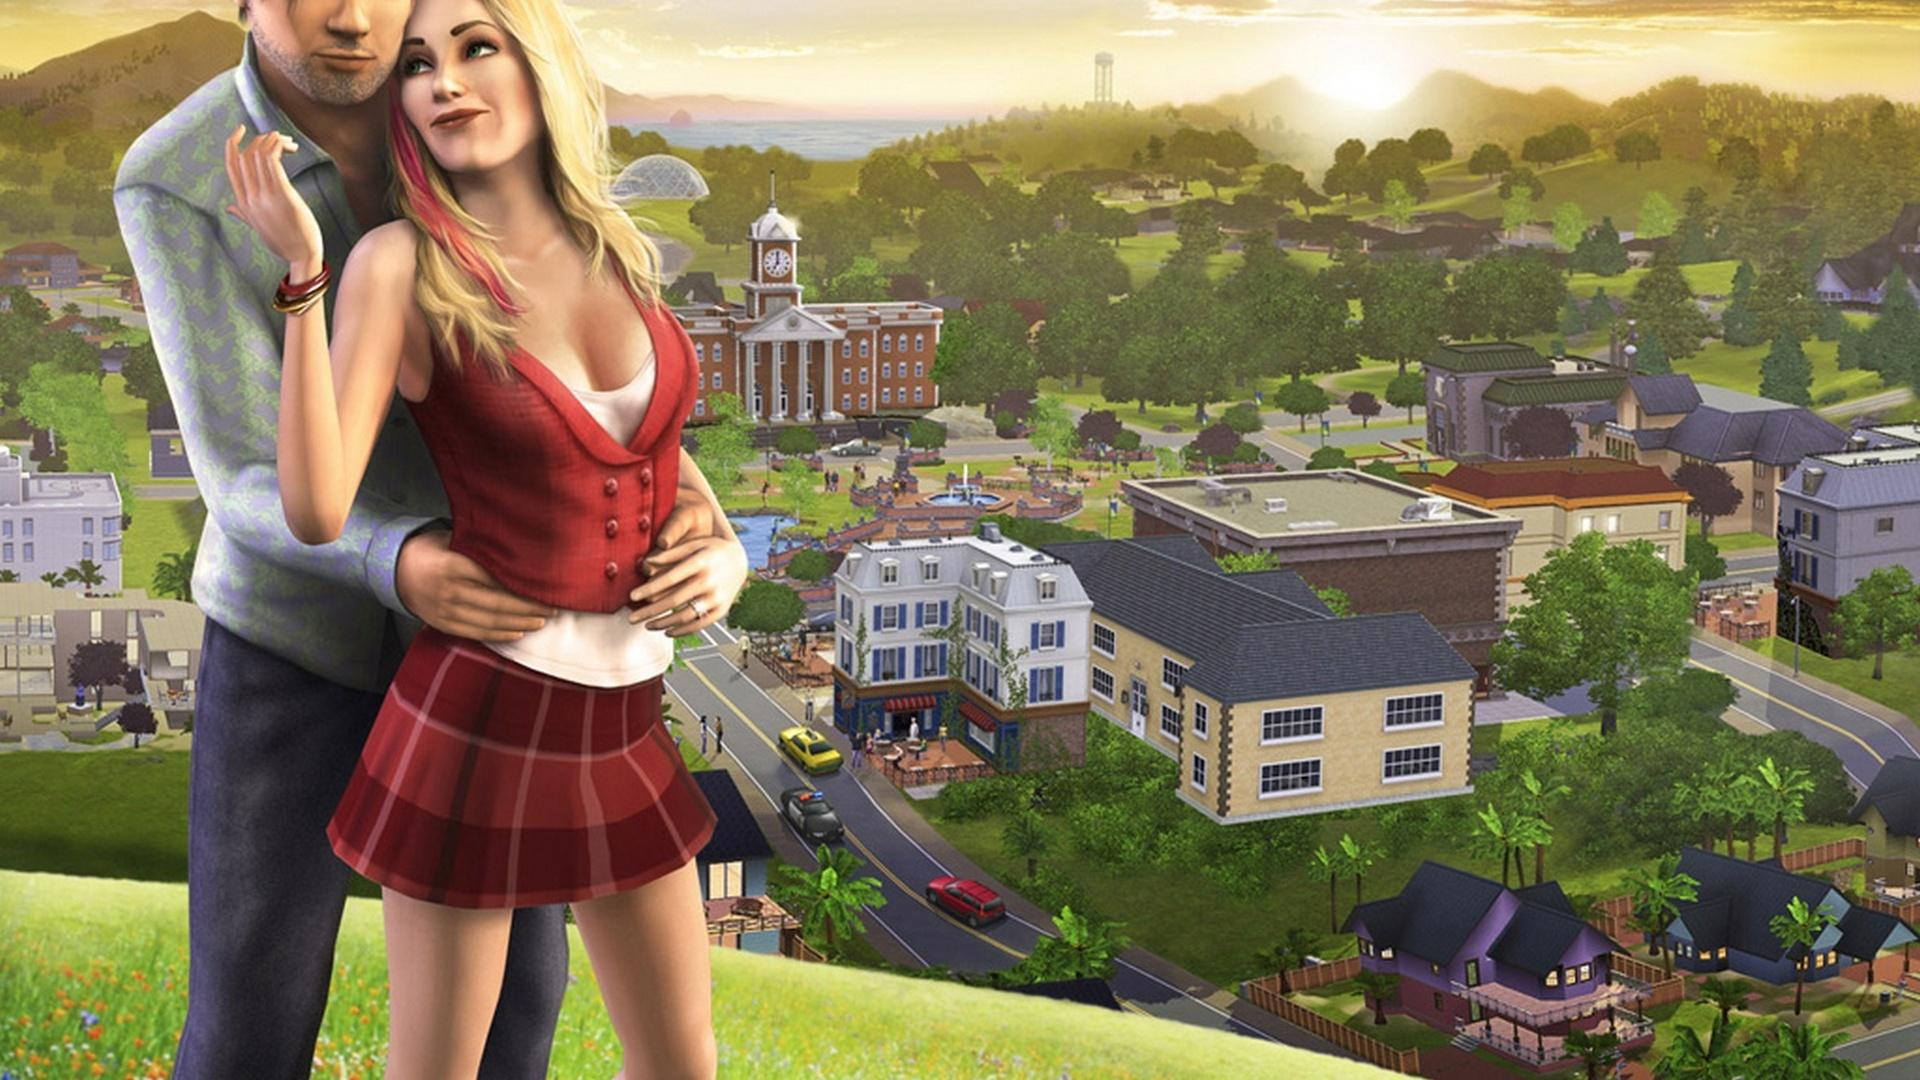 The Sims 4 Full Version: An Interactive Game image